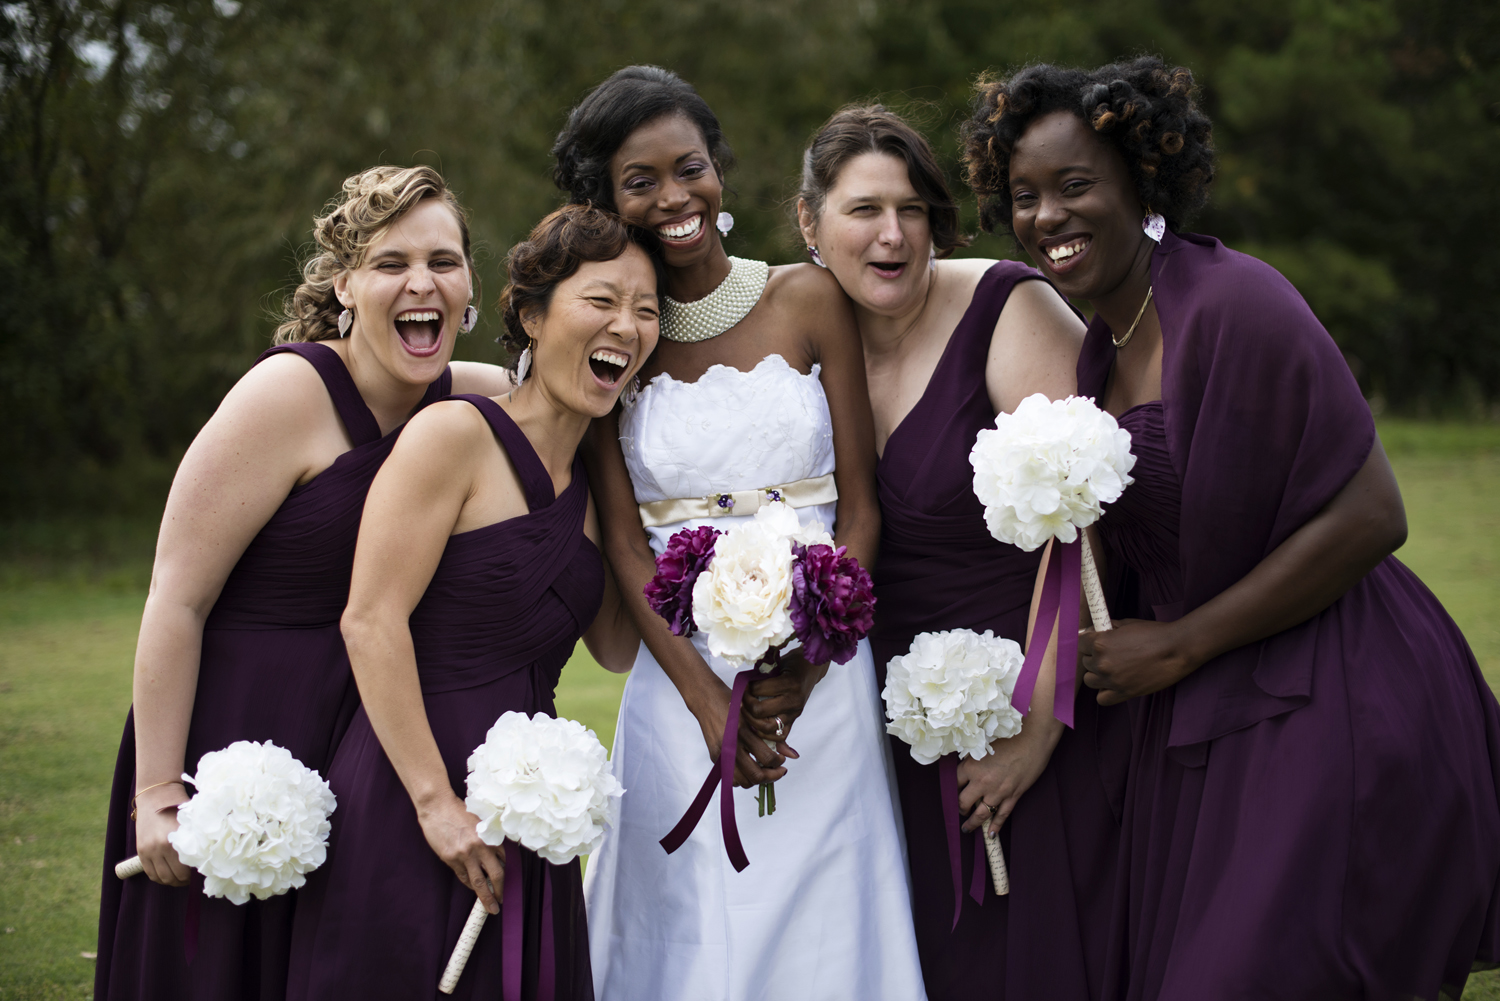 Bridesmaids in purple dresses with white flowers